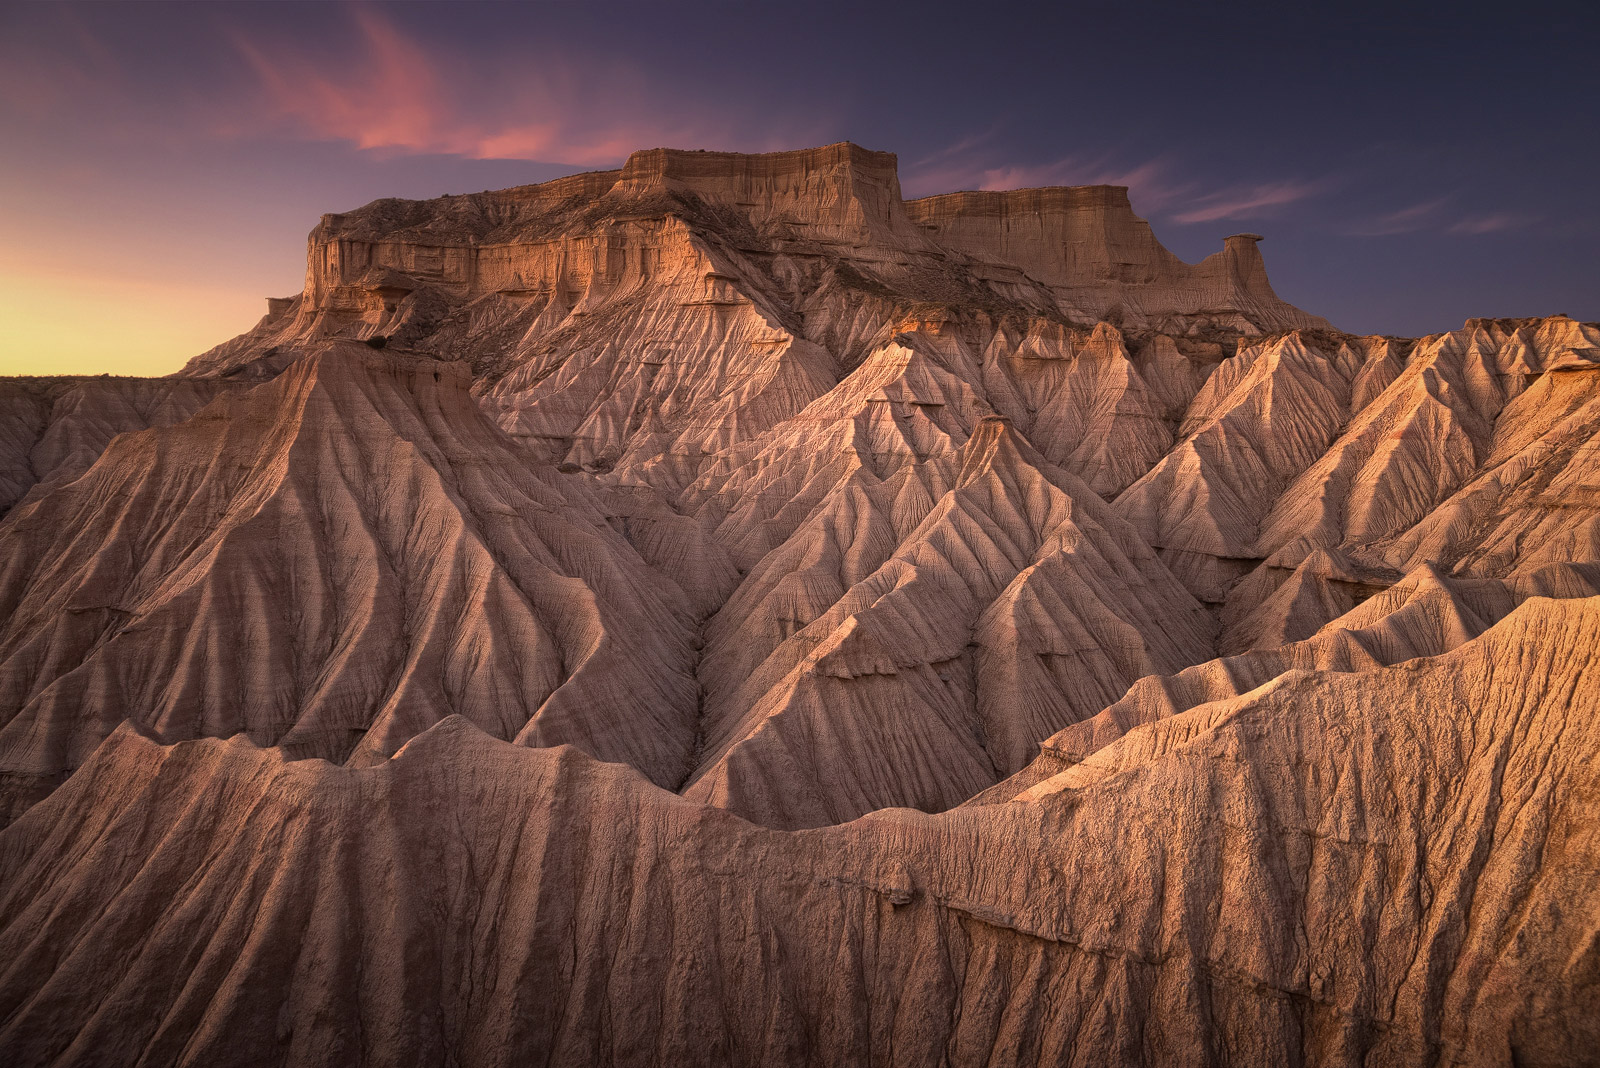 Sunset above the Bardenas Reales